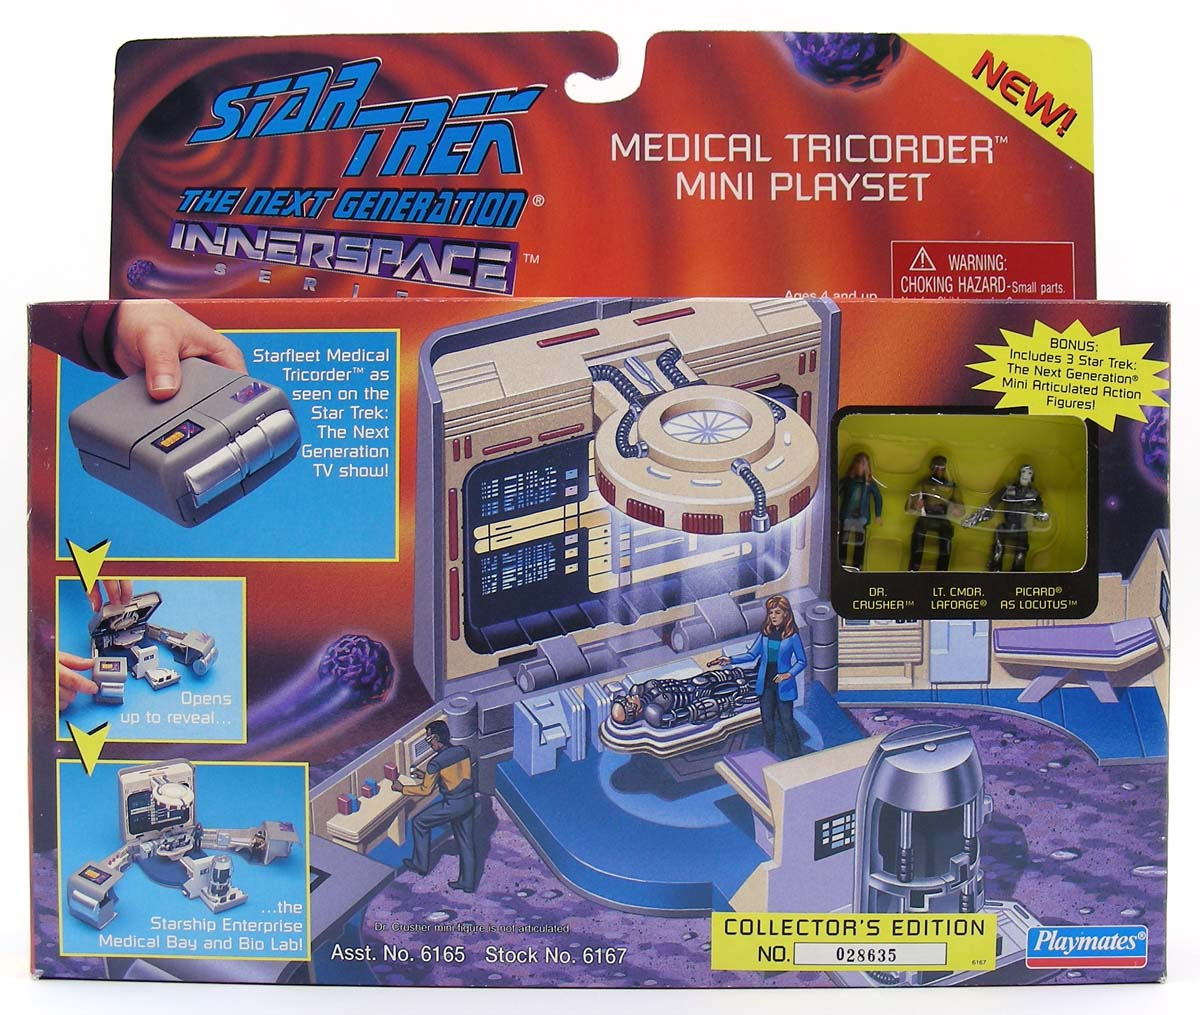 Mini playsets vaisseaux et figurines. Star_Trek_The_Next_Generation_Innerspace_Medical_Tricorder